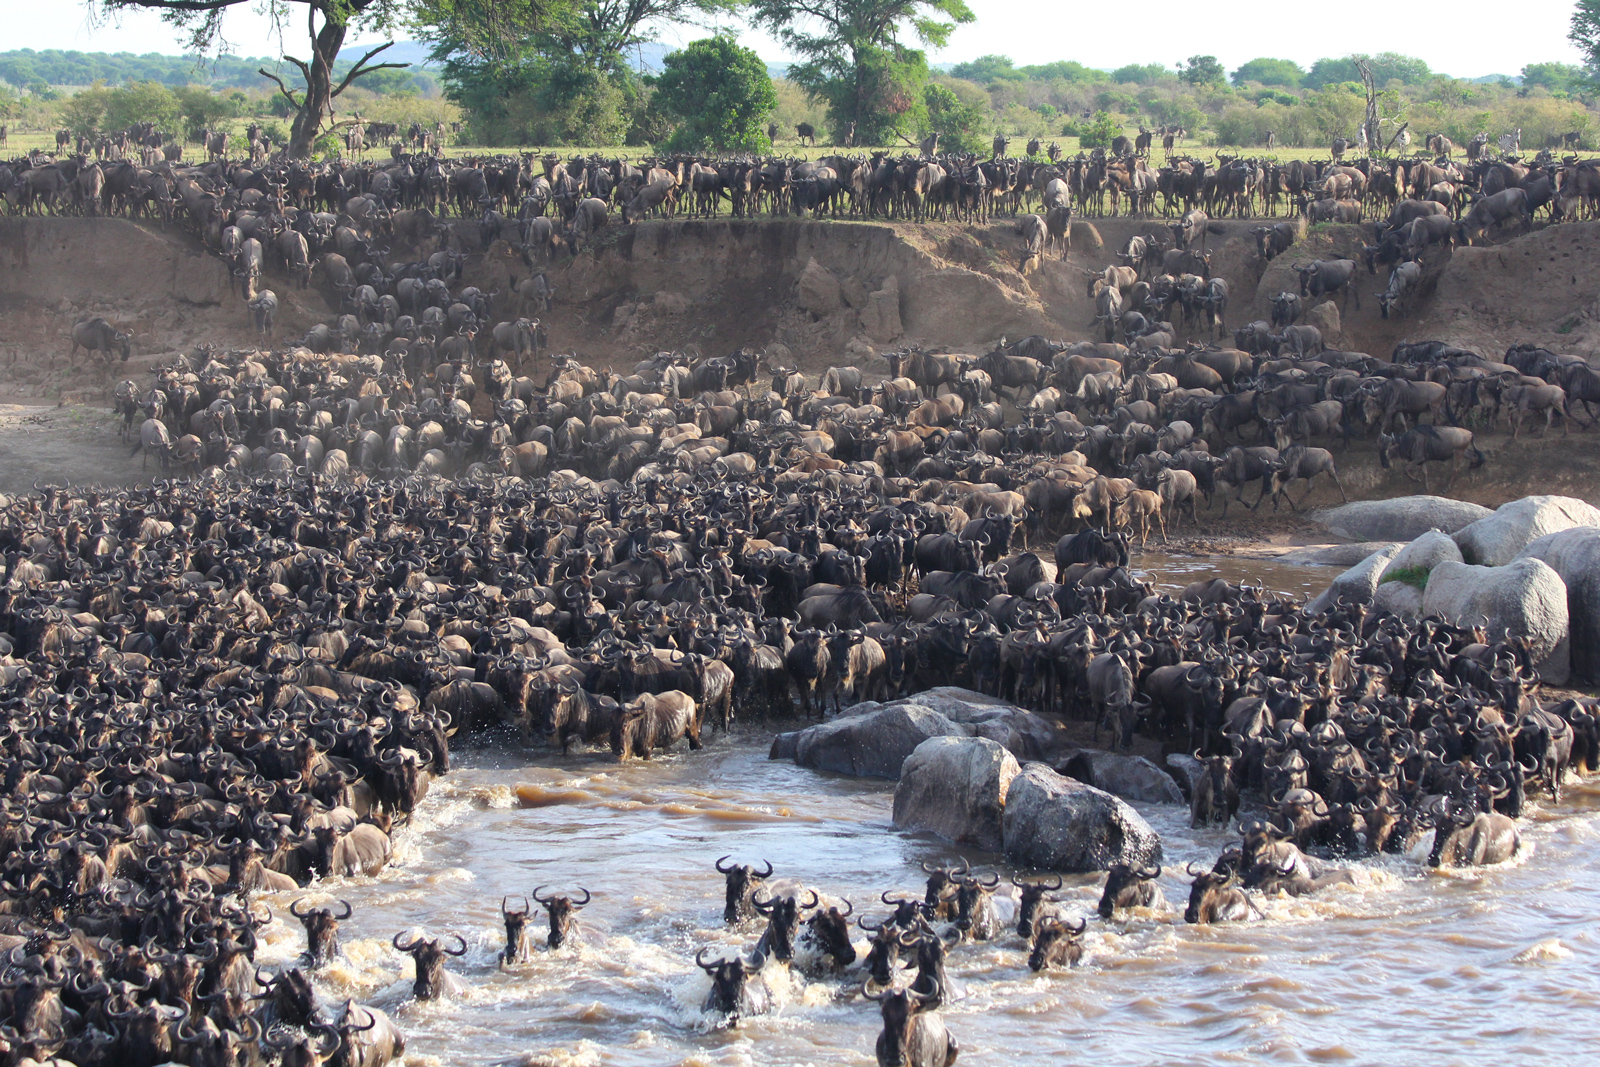 Wildebeest crossing a river in the Serengeti